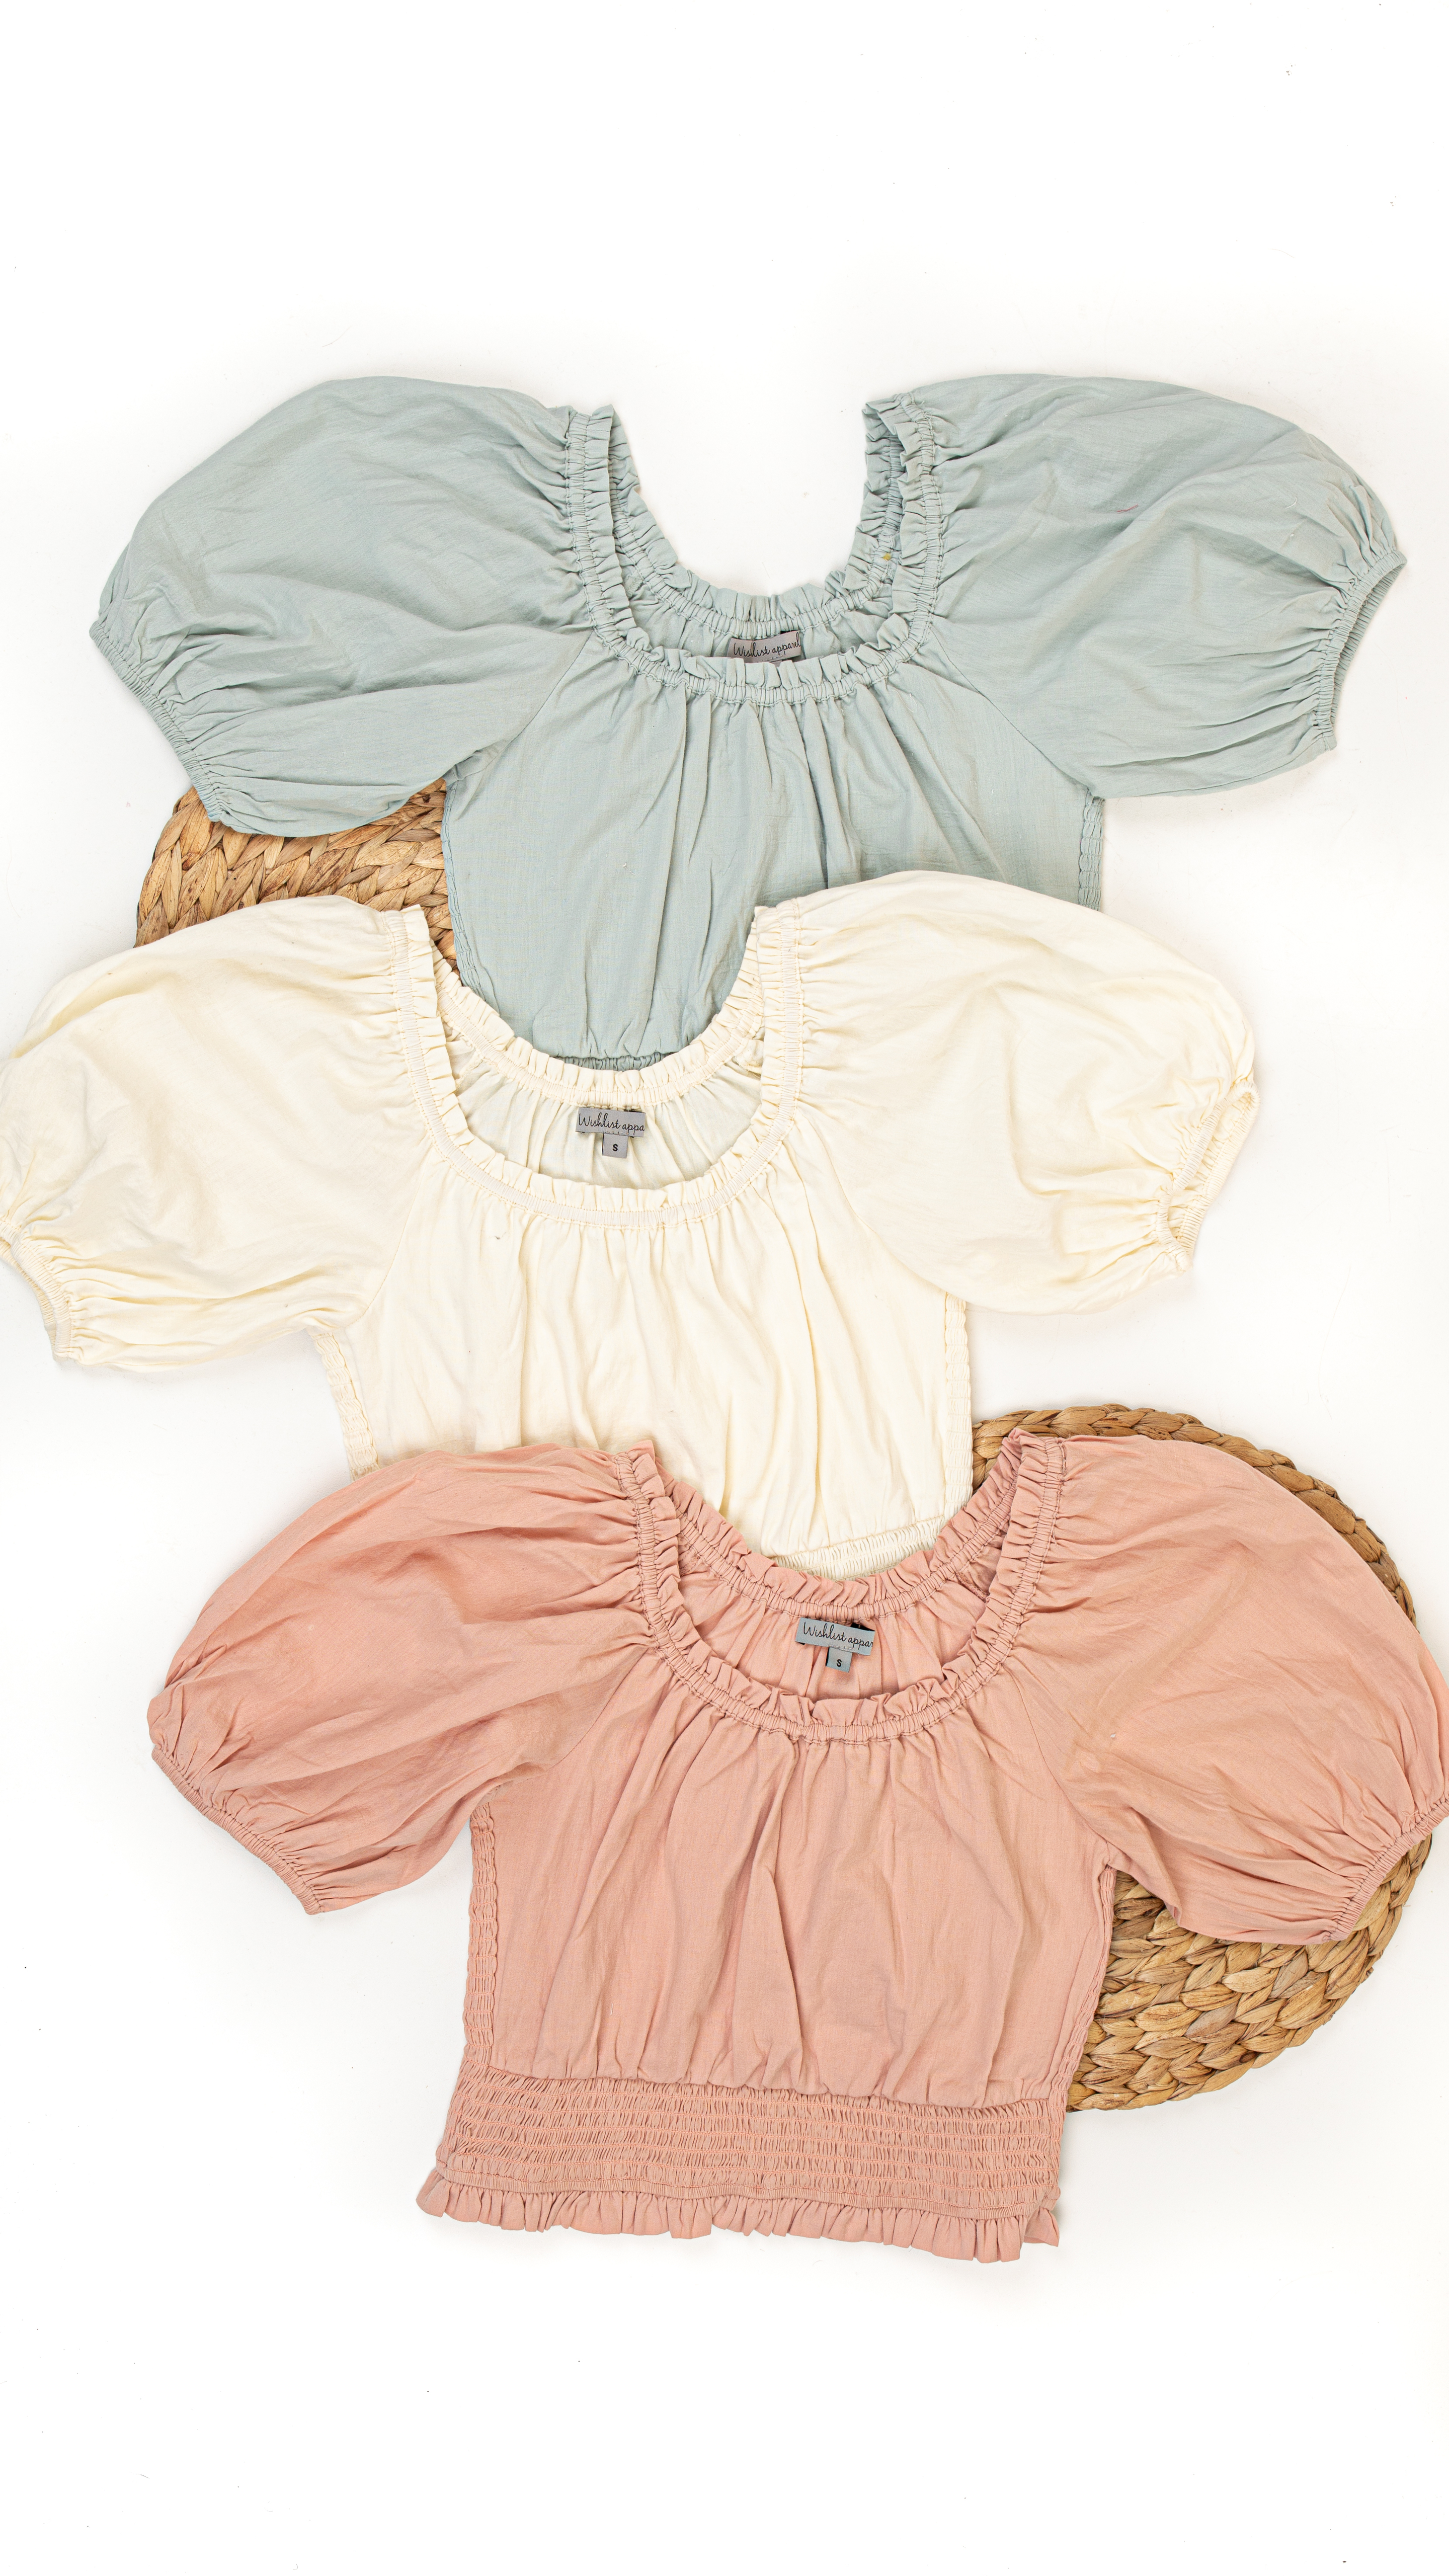 Dusty Blush Smocked Crop Top with Short Puffed Sleeves